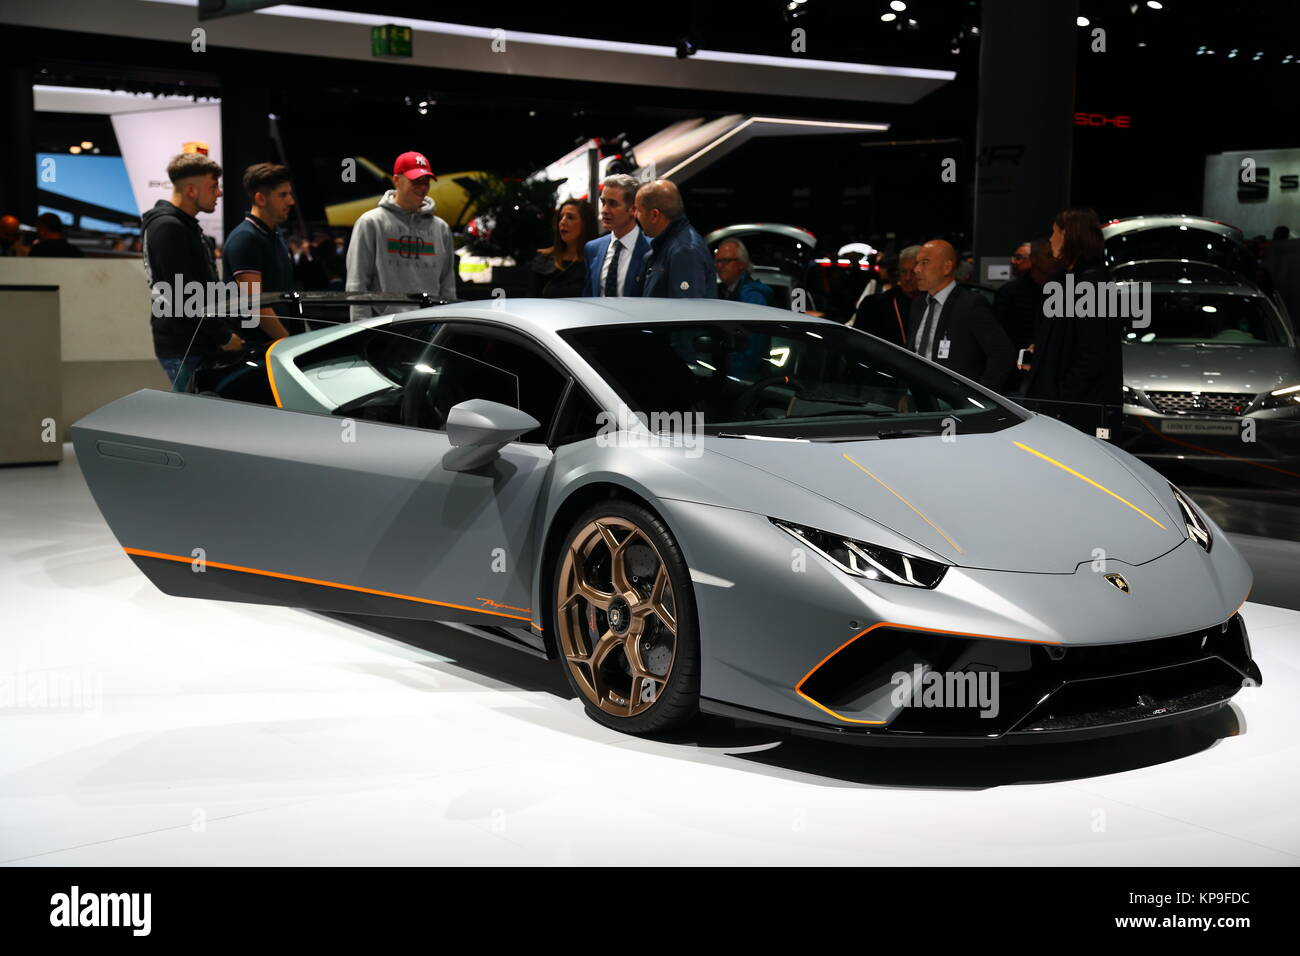 Lamborghini Huracan Performante At The Frankfurt International Motor Show  2017, Germany   Stock Image